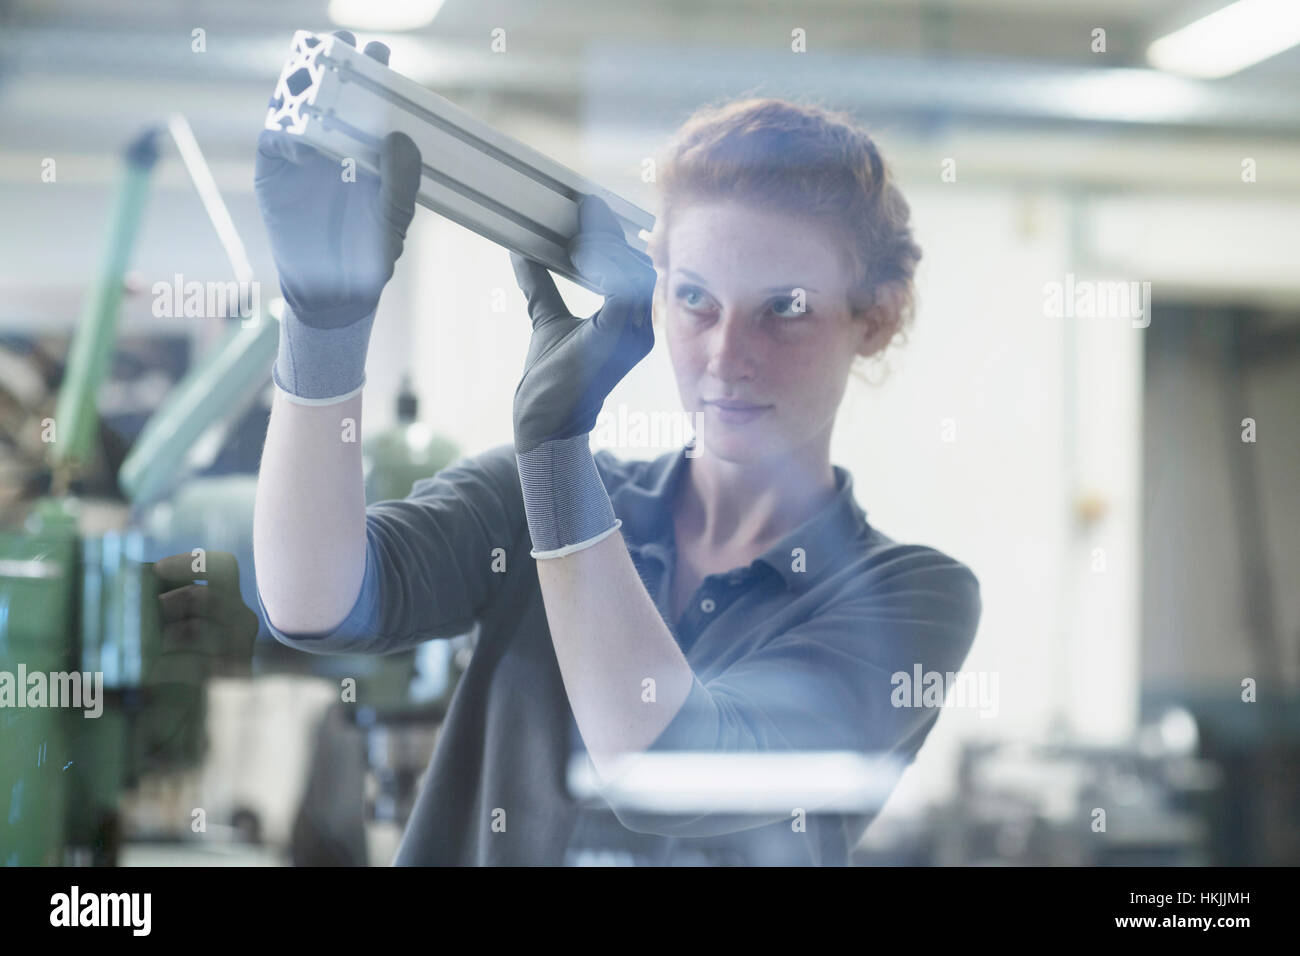 Young female engineer looking at machine part in an industrial plant, Freiburg im Breisgau, Baden-Württemberg, - Stock Image